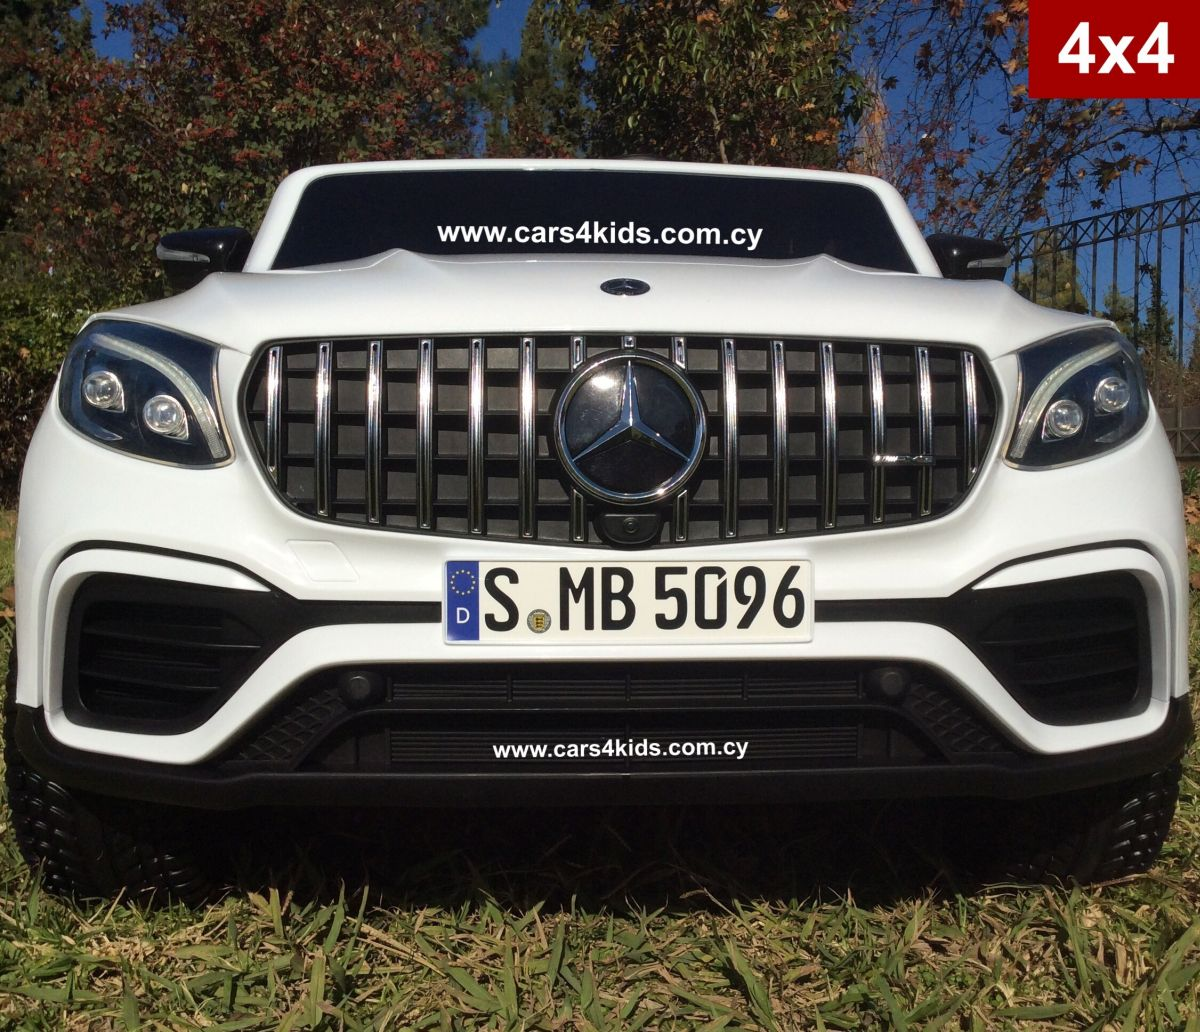 4x4 Mercedes GLS 63 AMG White with 2.4G R/C under License